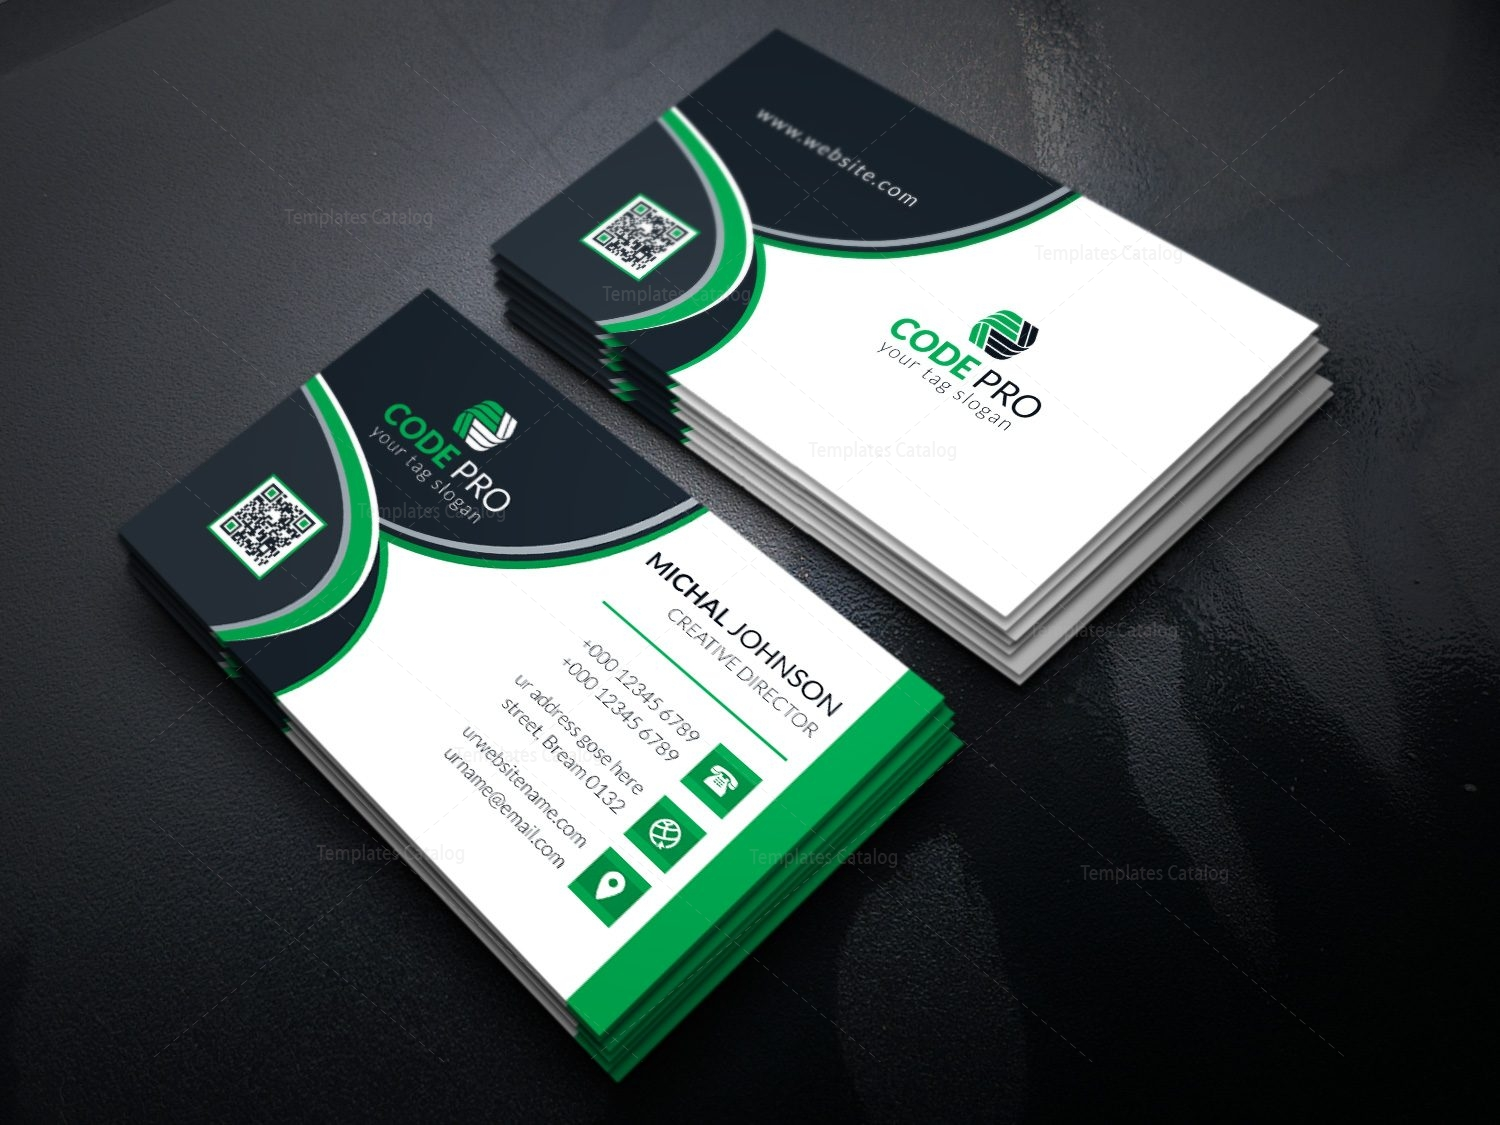 fancy business card design template in eps format - Fancy Business Cards